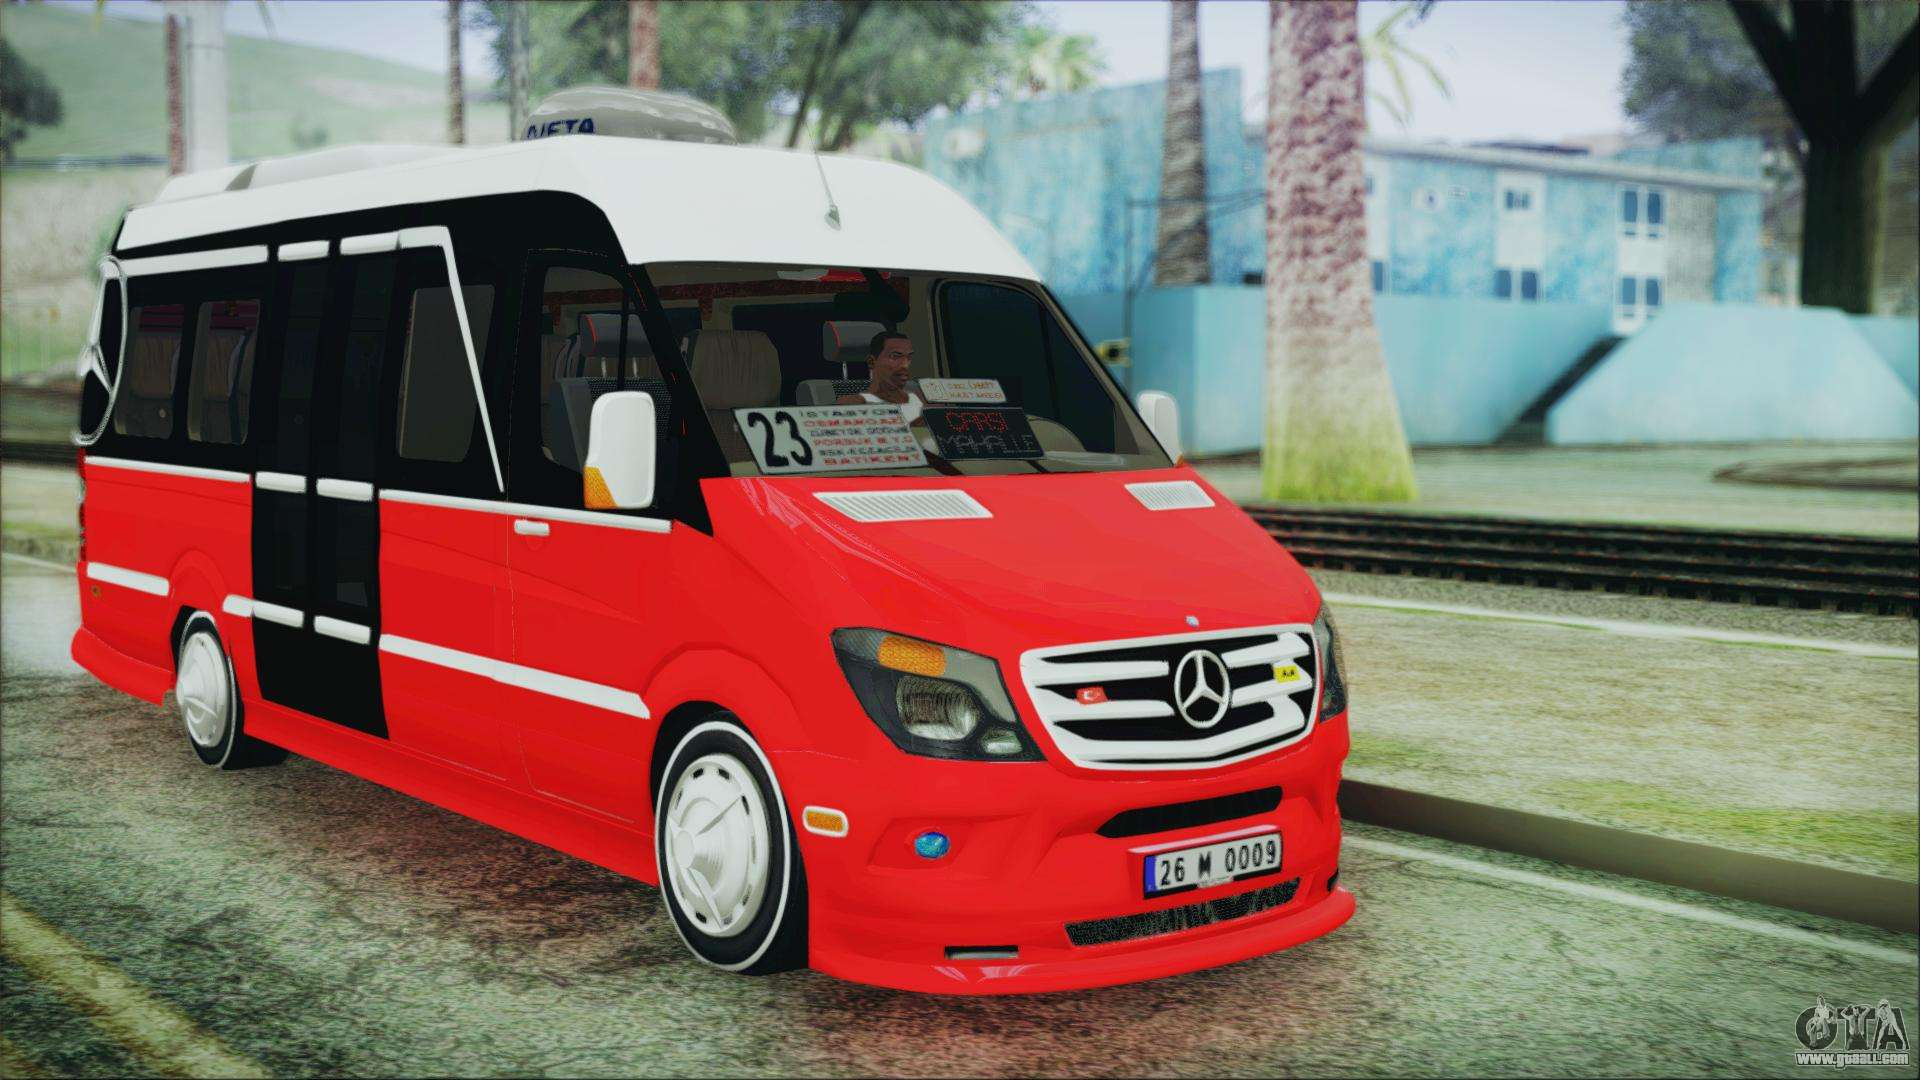 Mercedes benz sprinter 26 m 0009 for gta san andreas for Mercedes benz gta